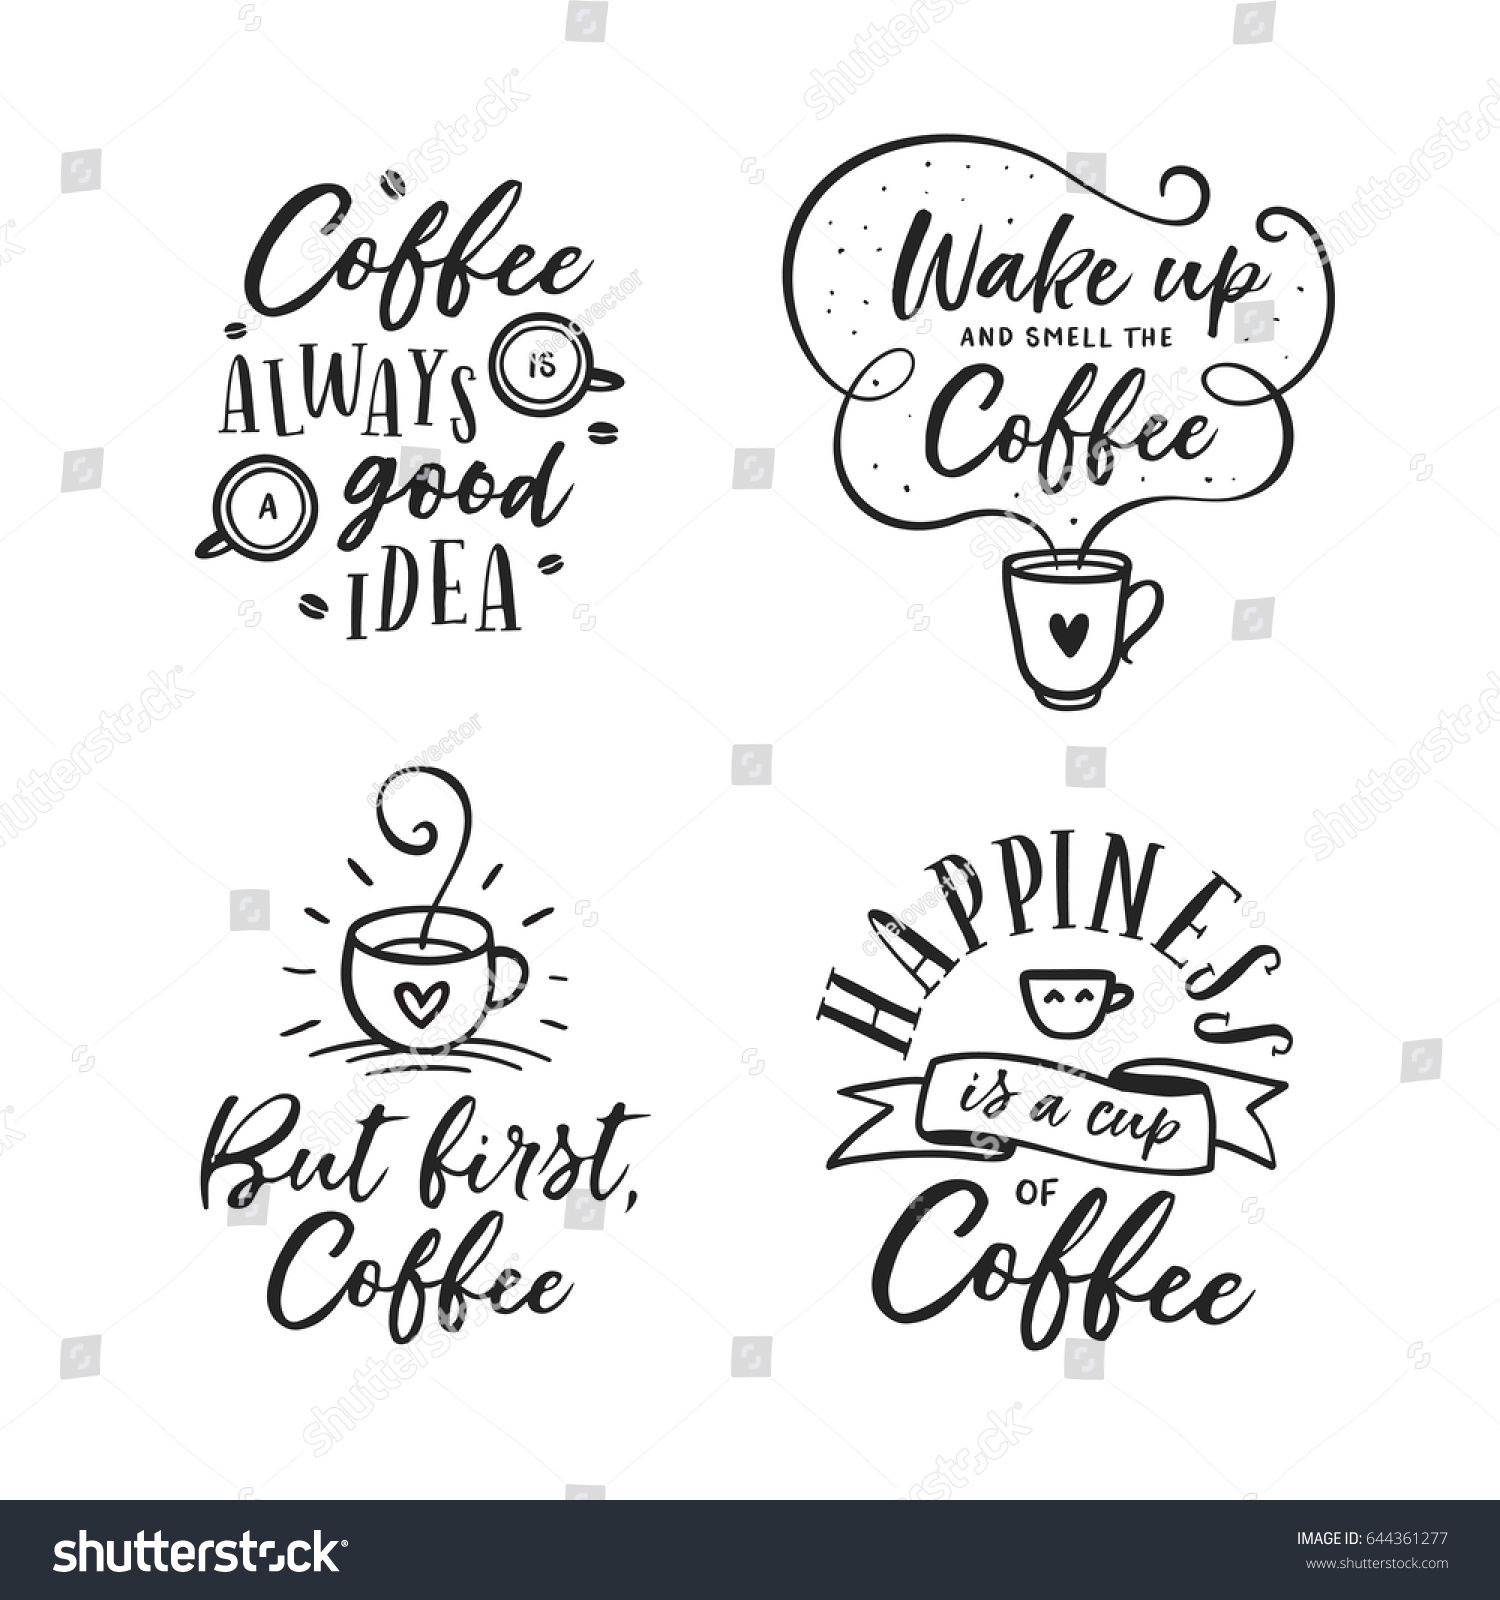 First Energy Stock Quote: Hand Drawn Coffee Related Popular Quotes Stock Vector